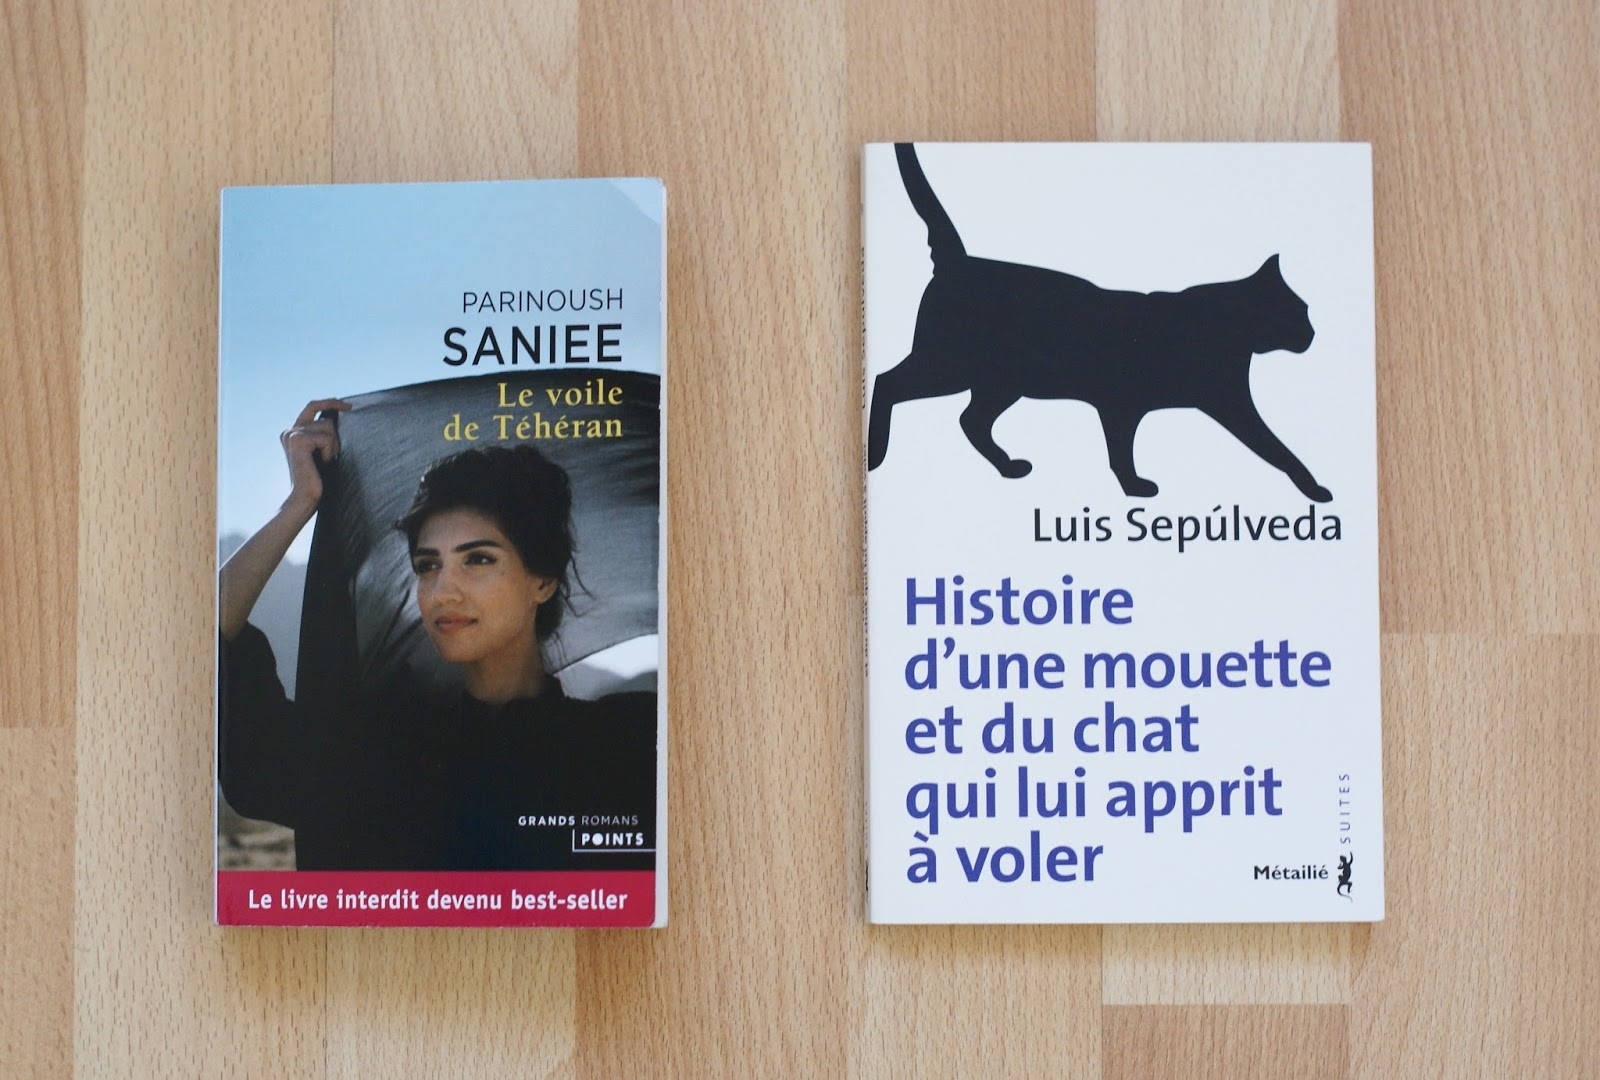 parinoush saniee voile téhéran luis sepulveda chat mouette livres books lecture reading